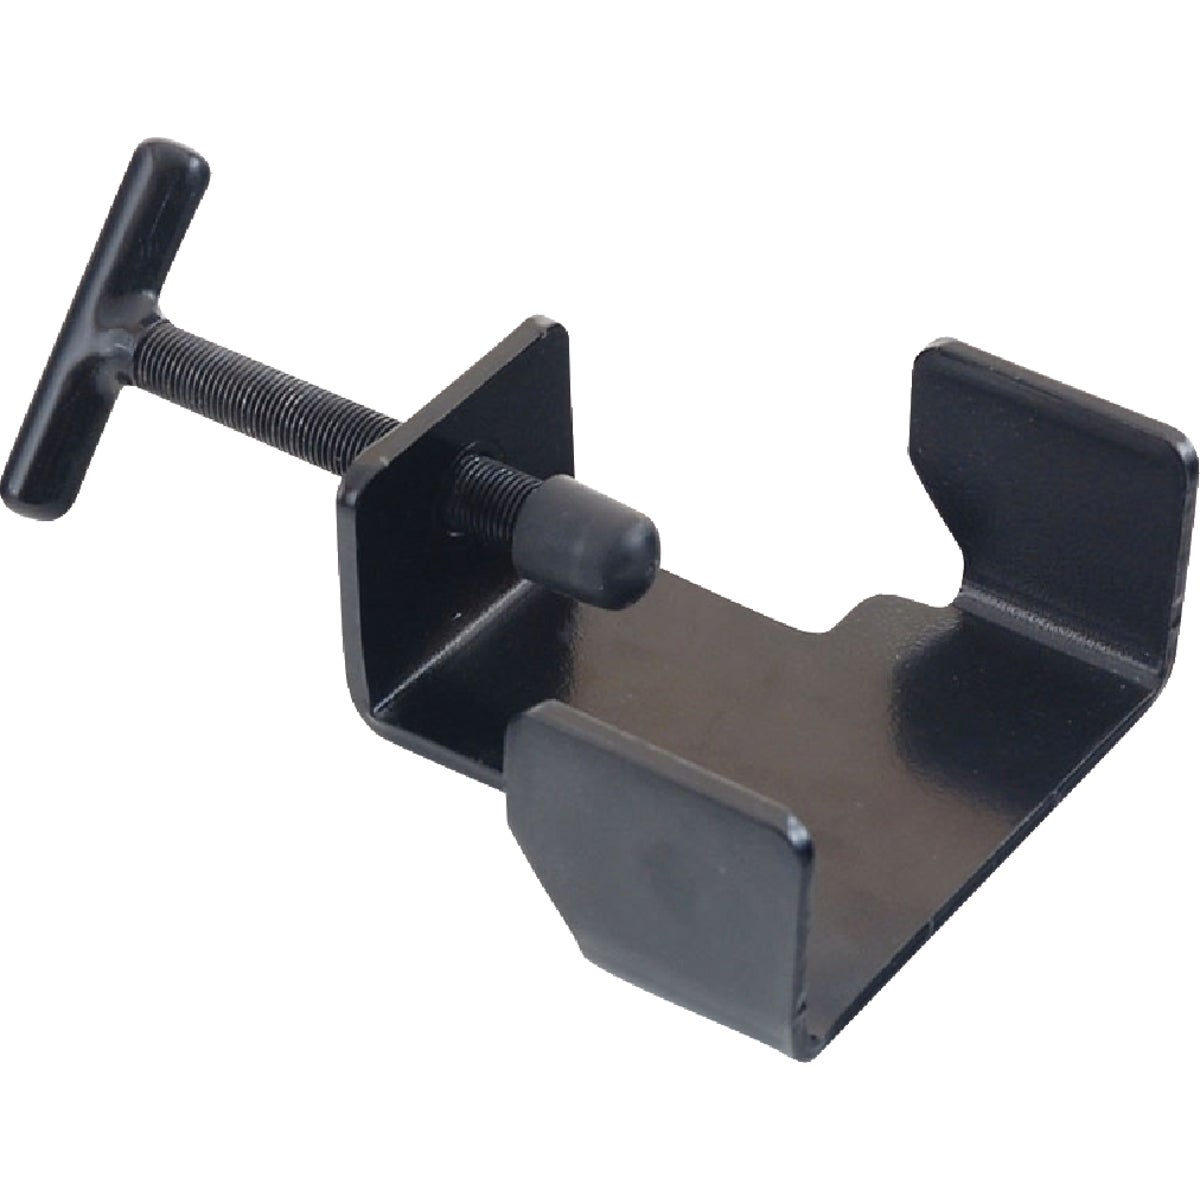 LAWNMOWER BLADE CLAMP - 490-850-0005 by Arnold Corp